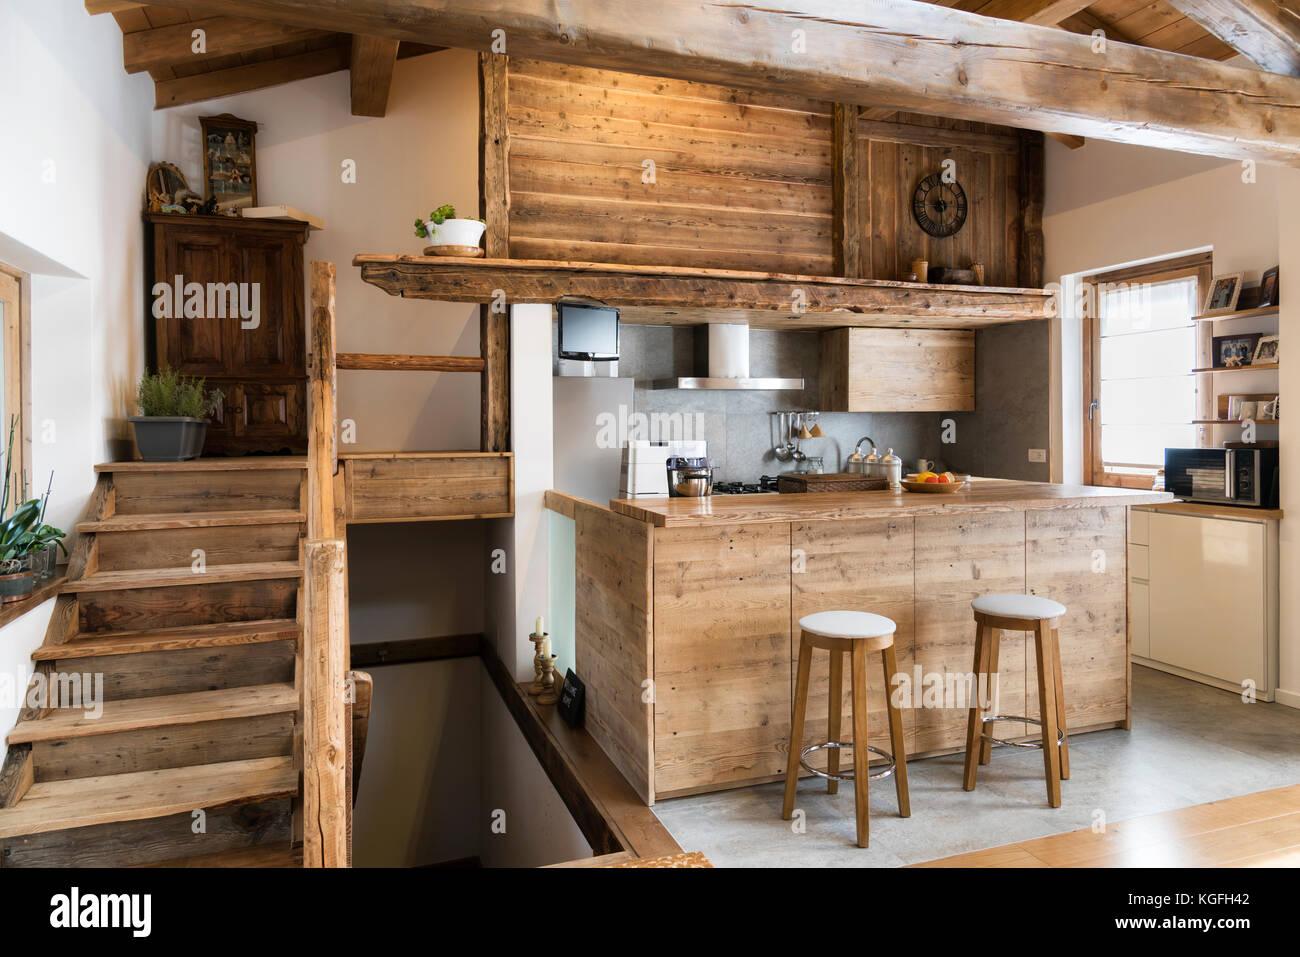 holz k che im landhausstil stockfoto bild 165070530 alamy. Black Bedroom Furniture Sets. Home Design Ideas